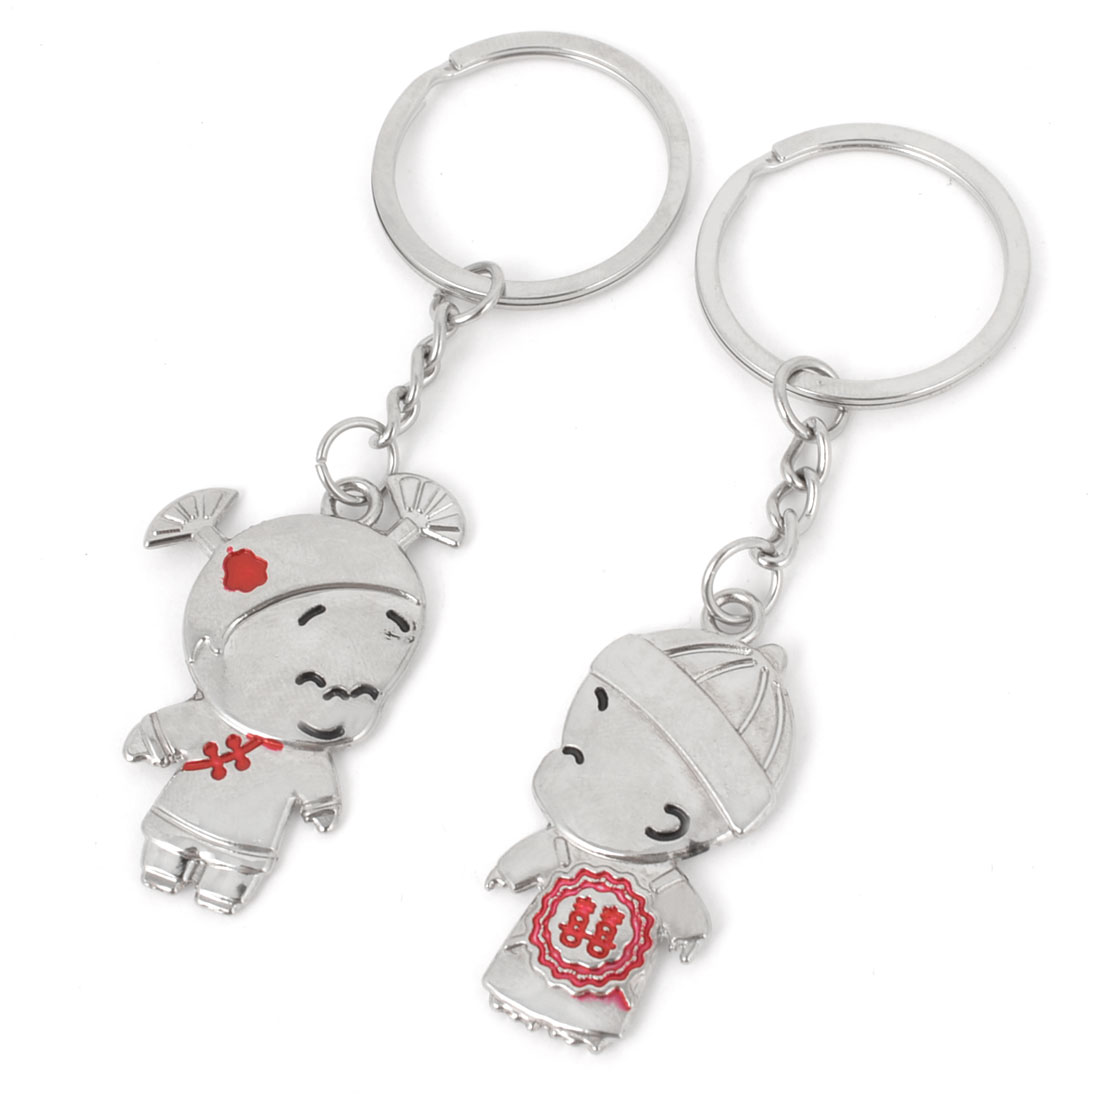 2 Pcs Double Happiness Print Boy Kissing Girl Design Metal Keyring Keychain Pendant Ornament for Lovers